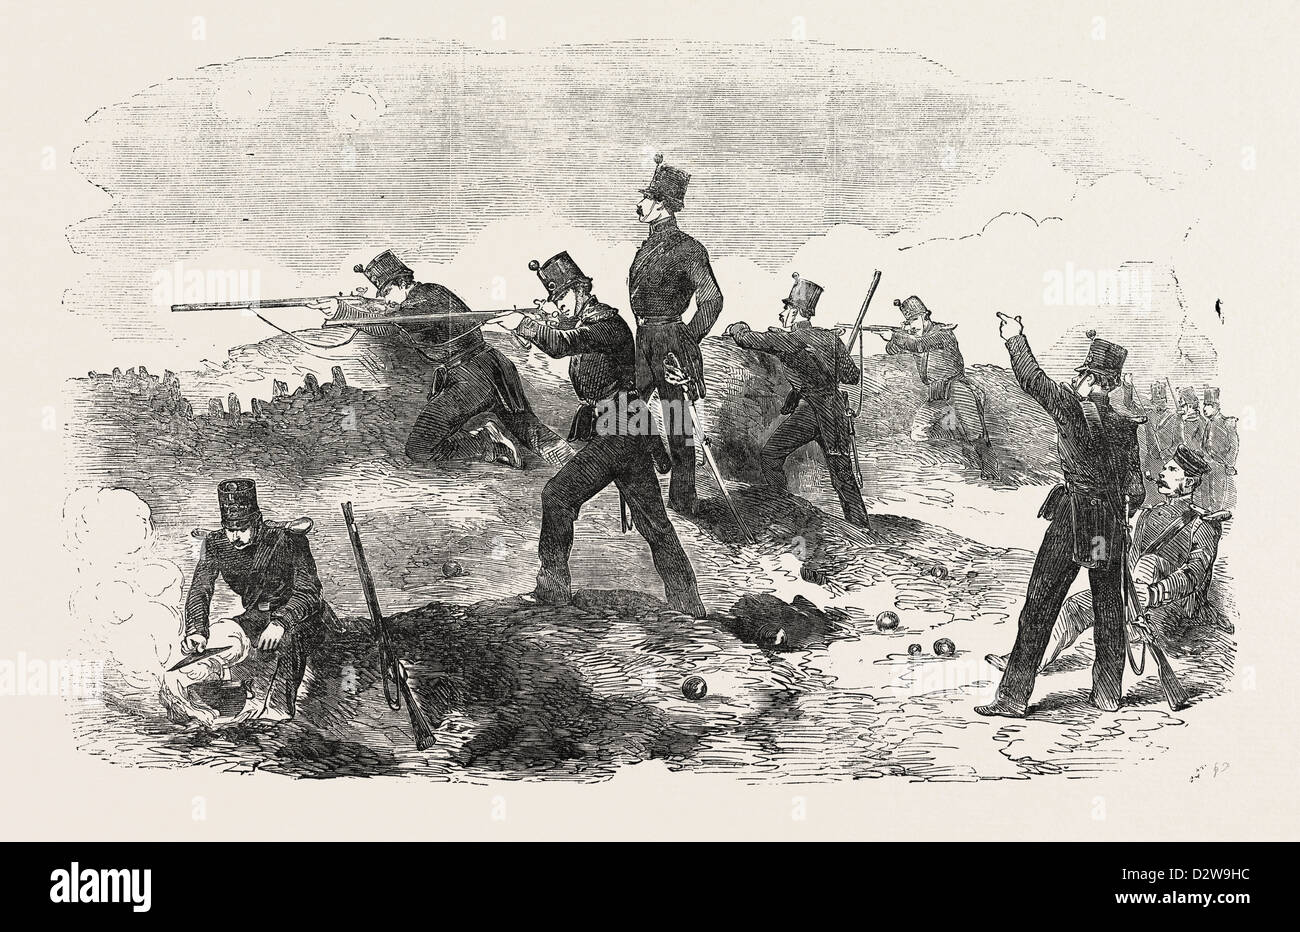 THE CRIMEAN WAR: THE SIEGE OF SEBASTOPOL THE RIFLES IN THE TRENCHES 1854 - Stock Image